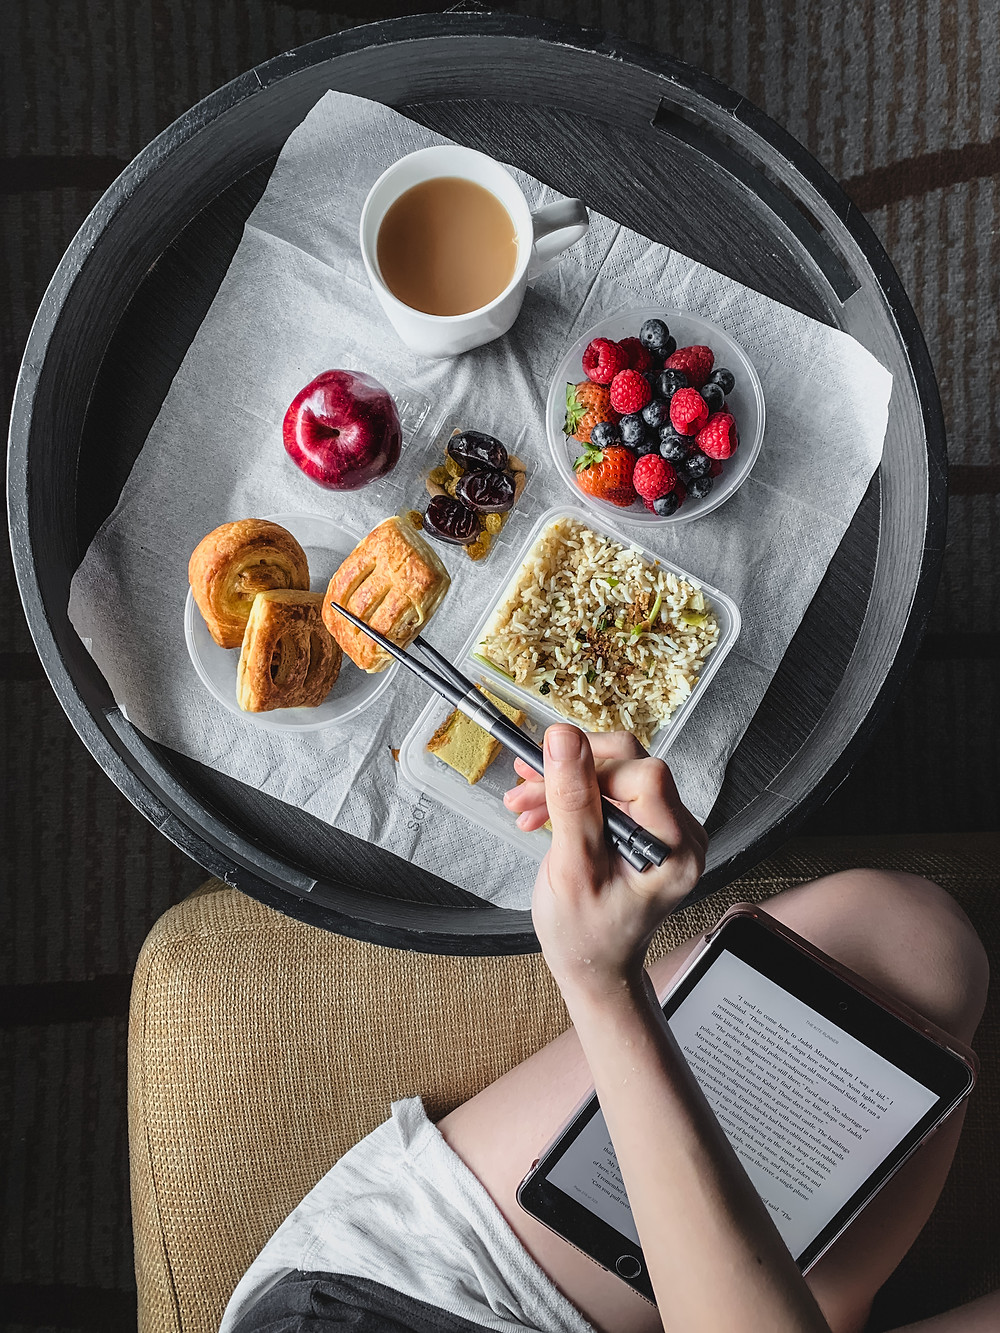 Rollingbear Travels blog/ hotel quarantine breakfast spread on a black circular wooden tray, flat lay photography, lifestyle blogger